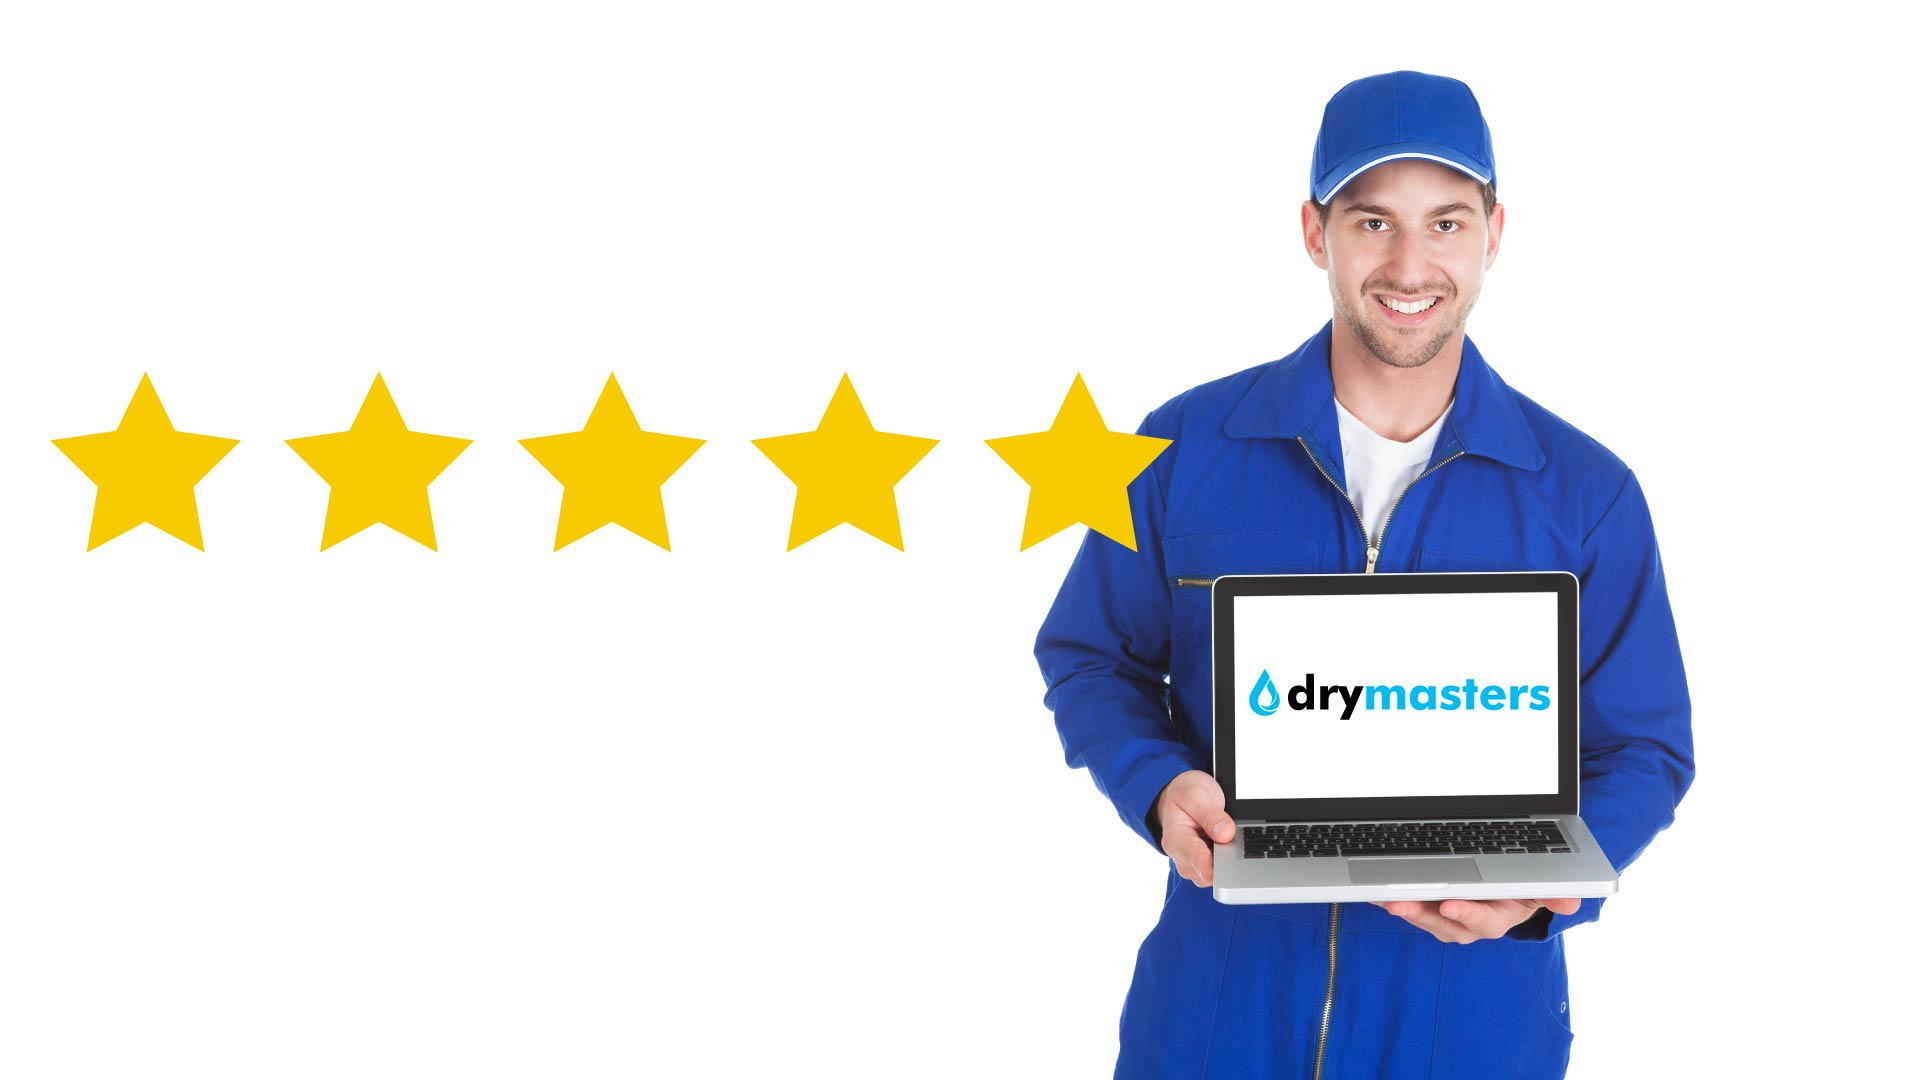 5 stars for DryMasters and installer